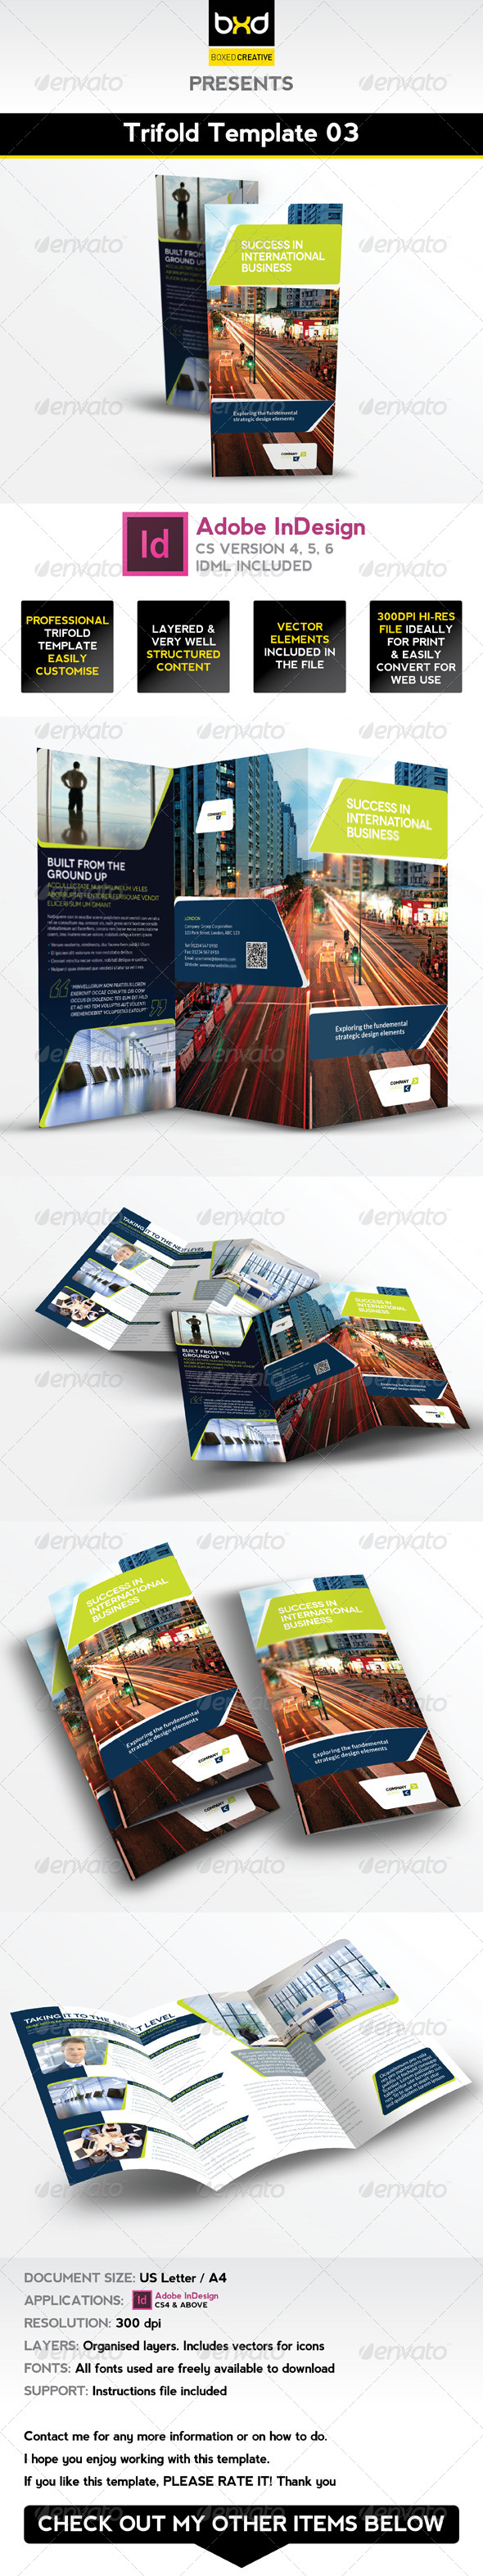 GraphicRiver Trifold Brochure Template 03 InDesign Layout 4994545